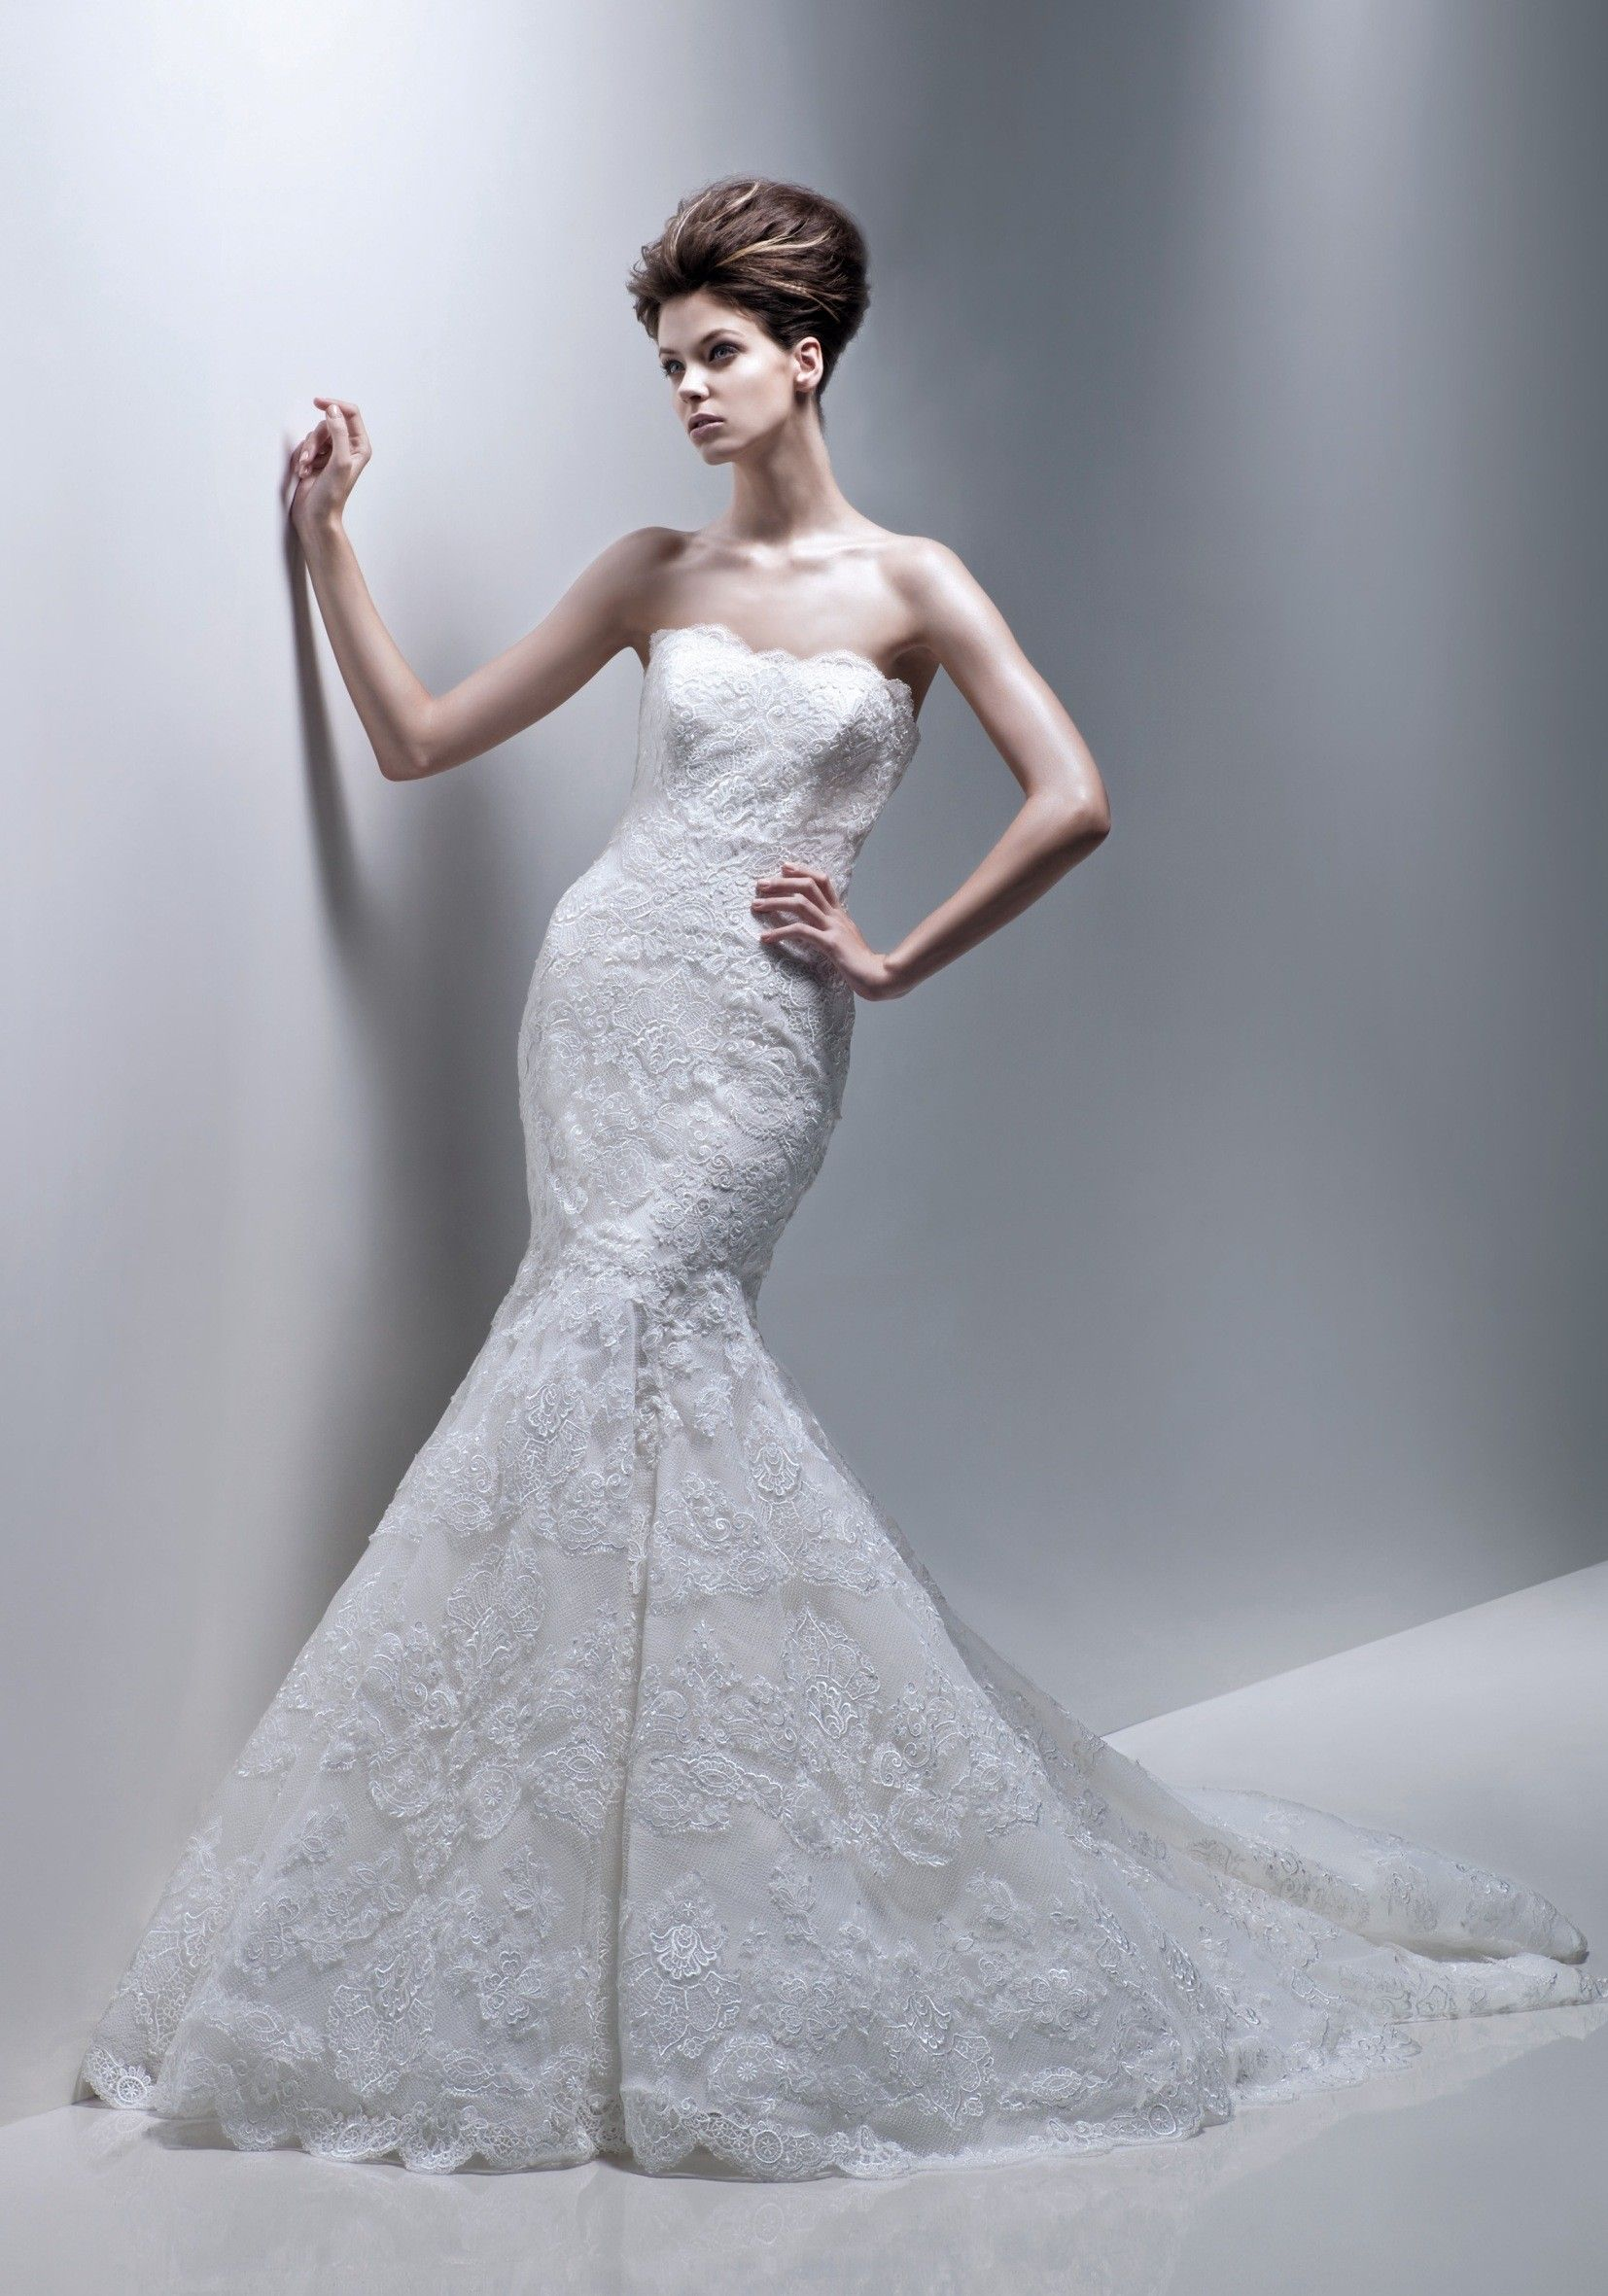 Pin by elisa rigoletti on bridal dress pinterest uk online